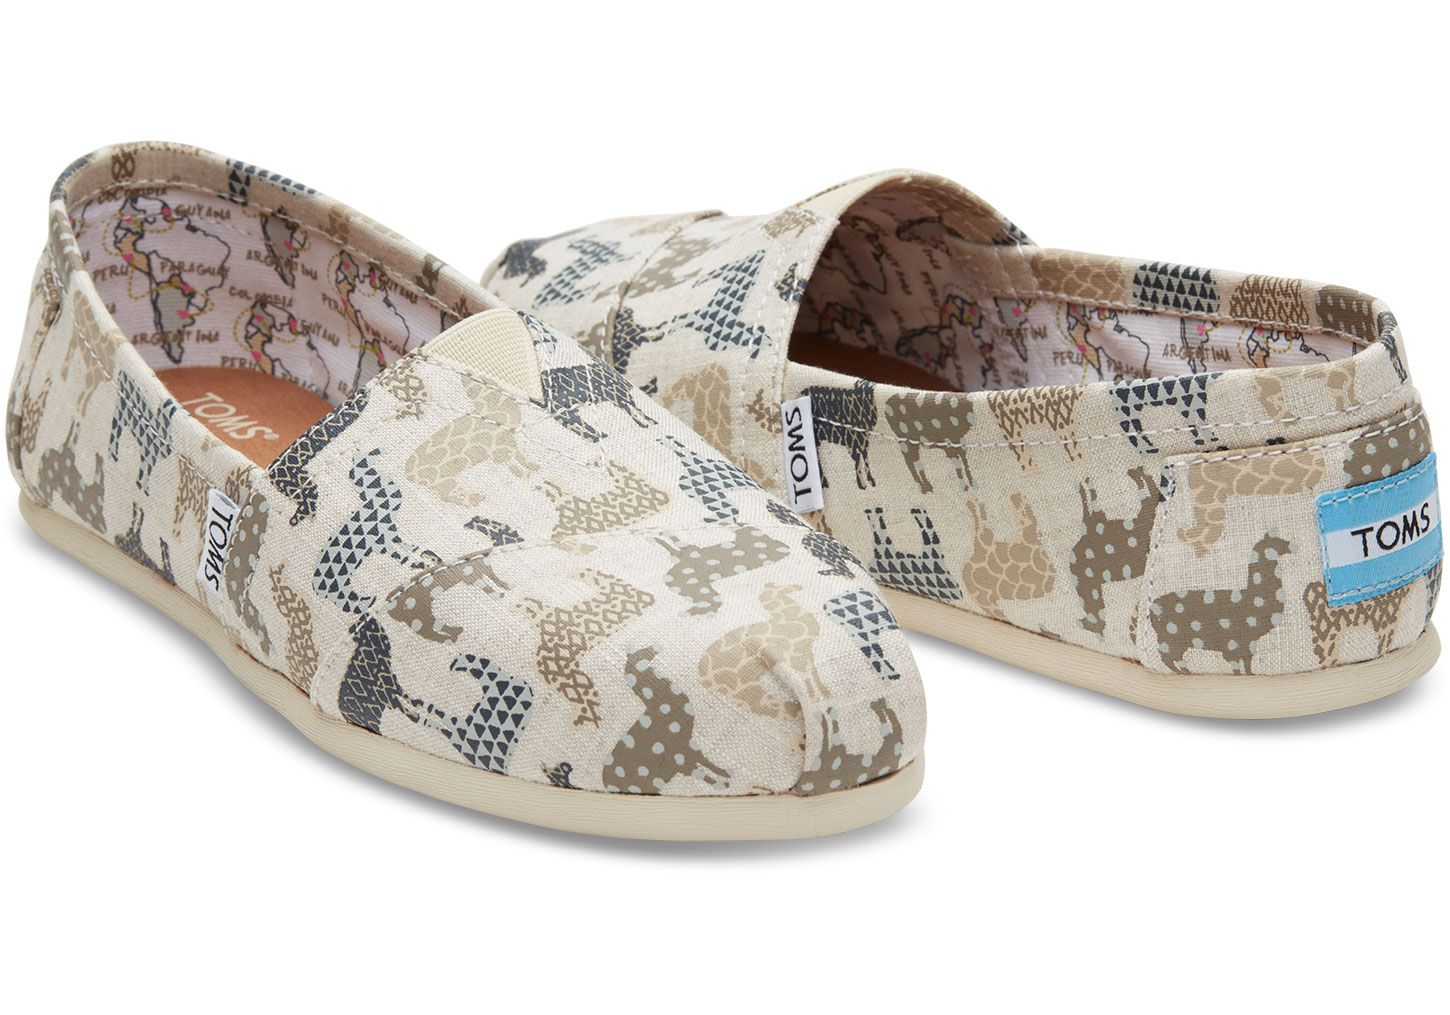 95248fbff13 This TOMS Exclusive Classic Alpargata featuring a llama print is inspired  by Peru